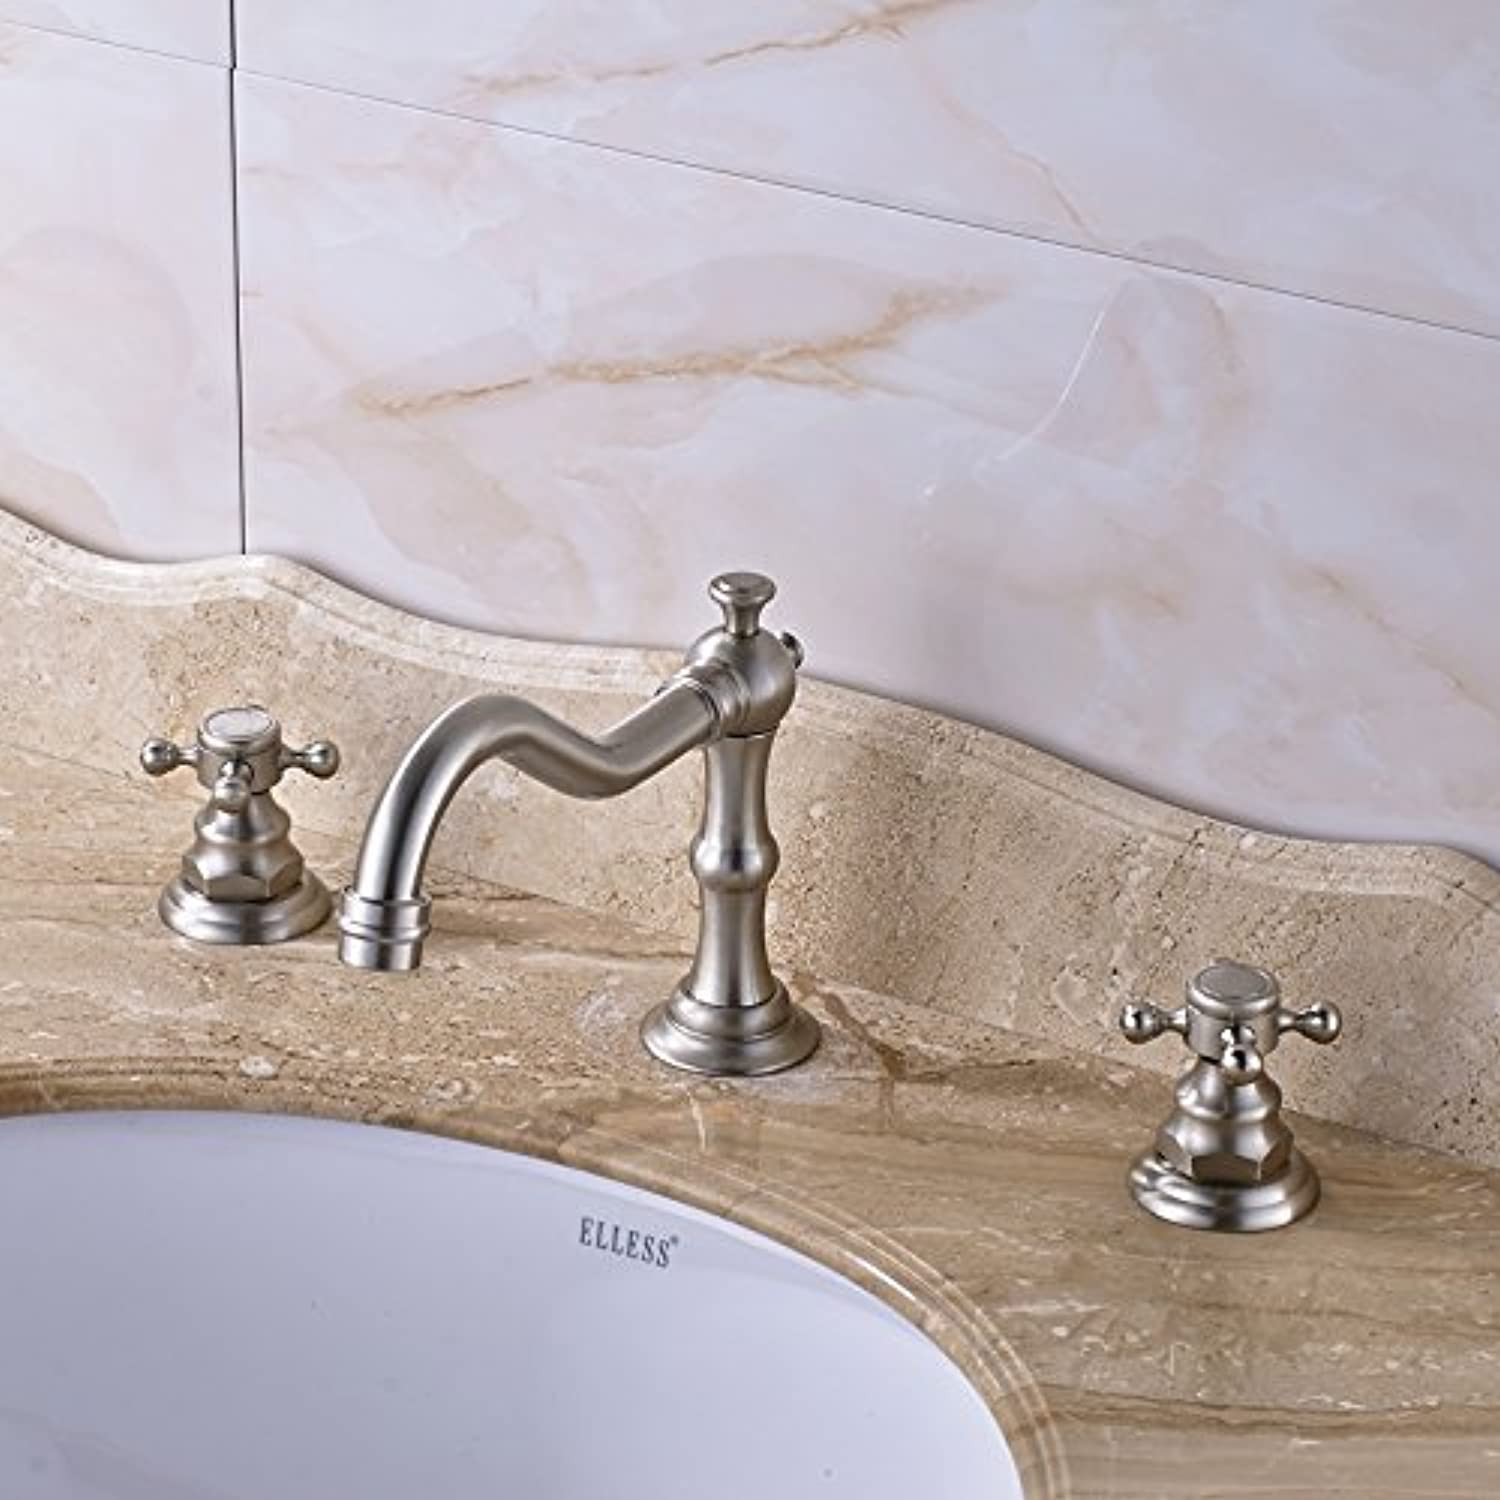 Maifeini The New Arrival Washbasin Faucet Polish Nickel Deck Inssizetion Of Two Of The Three Holes In The Handle